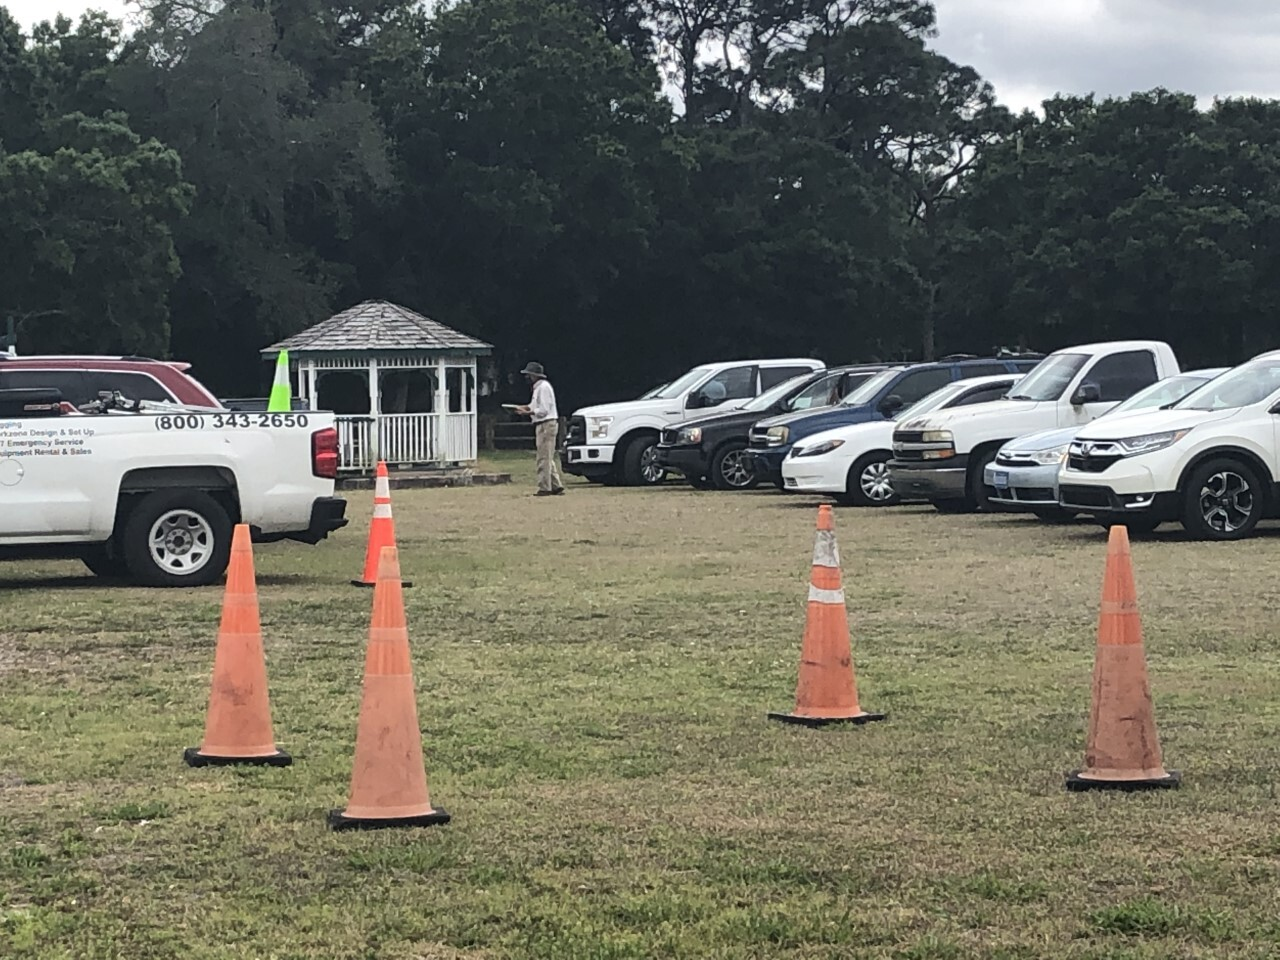 Vehicles line up at long-term COVID-19 vaccine site in Fort Pierce on day it opens